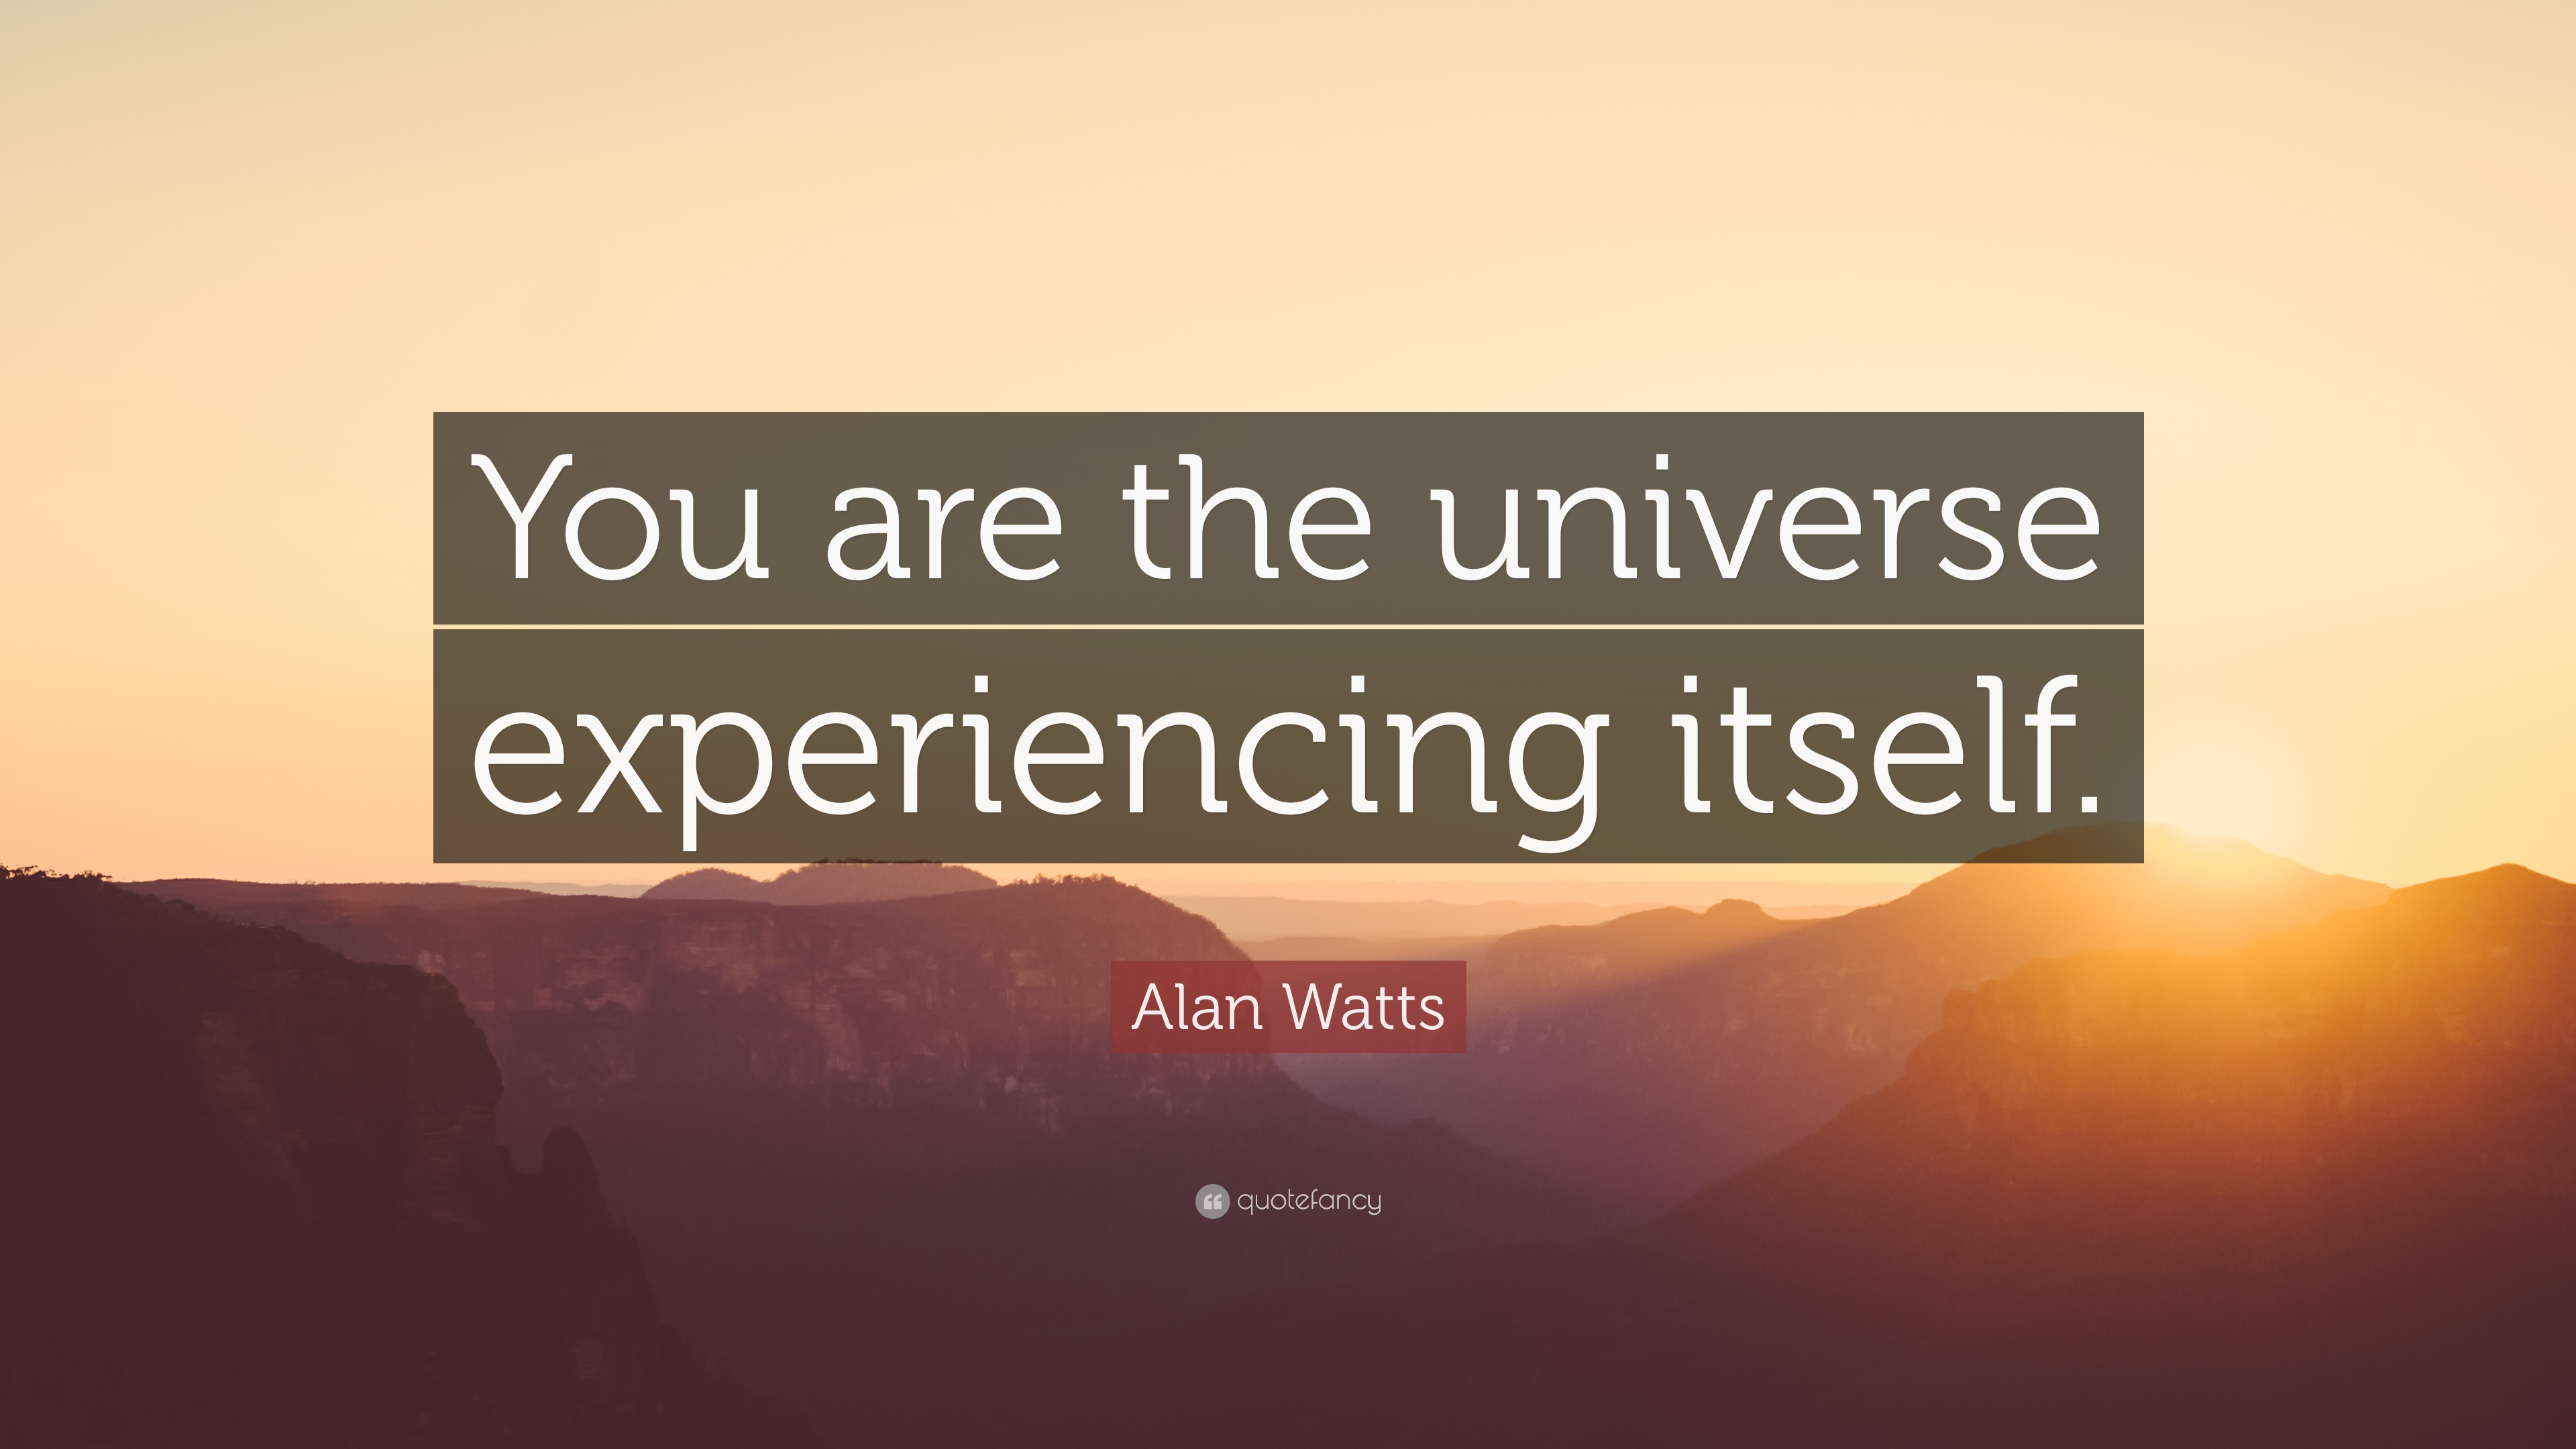 """Alan Watts Quote: """"You are the universe experiencing itself."""" (18 wallpapers) - Quotefancy"""